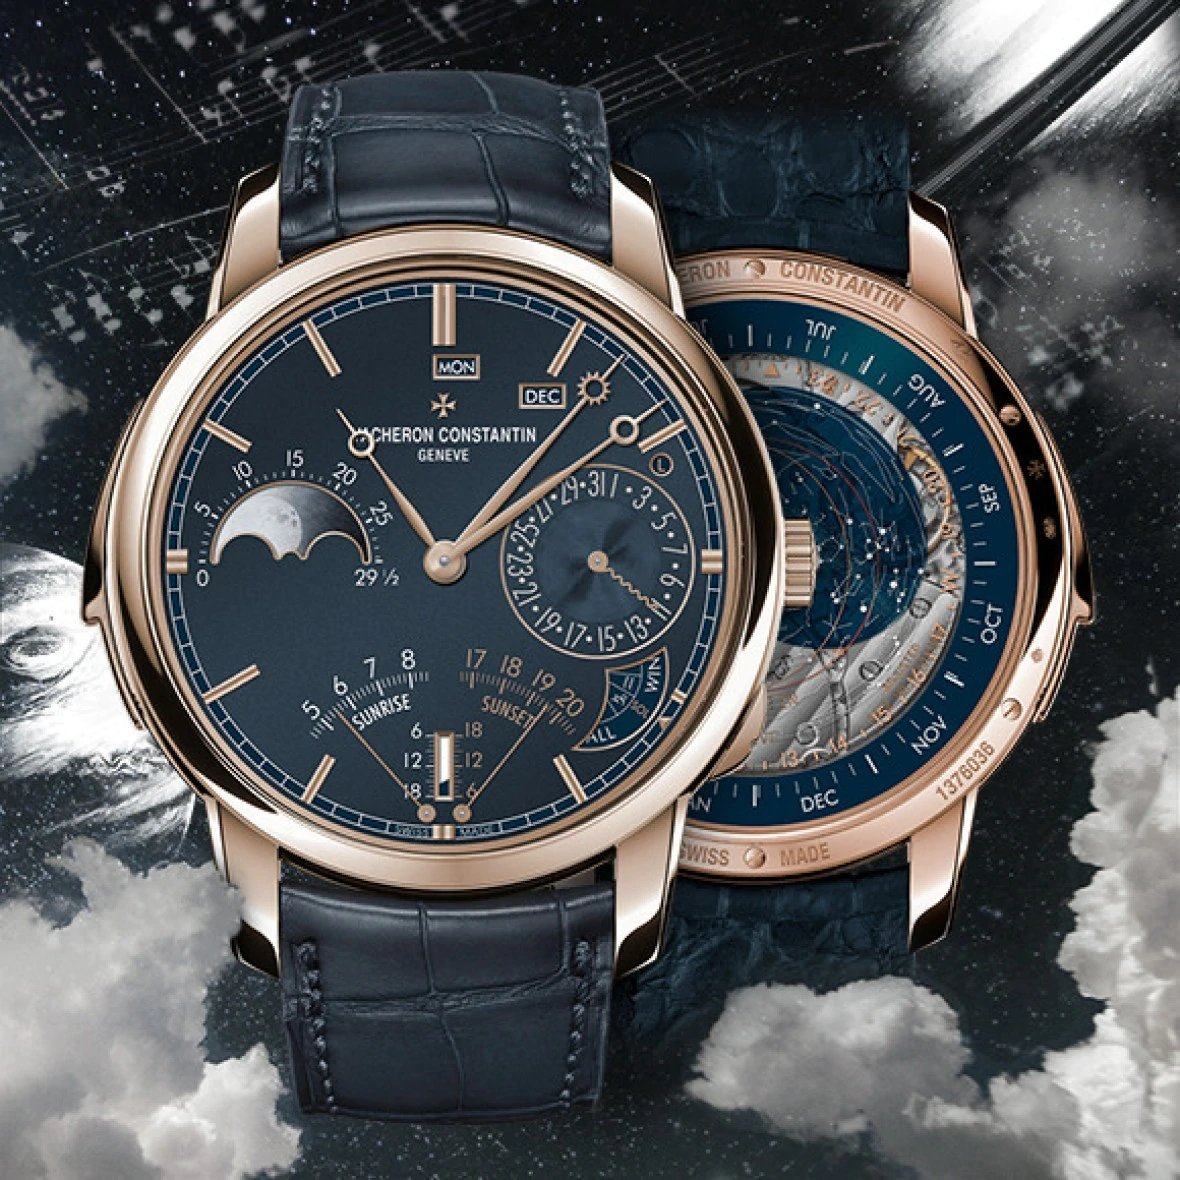 The Top 5 Luxury Timepieces Of 2020 (So Far!) luxury timepiece The Top 5 Luxury Timepieces Of 2020 (So Far!) The Top 5 Luxury Timepieces Of 2020 So Far 1